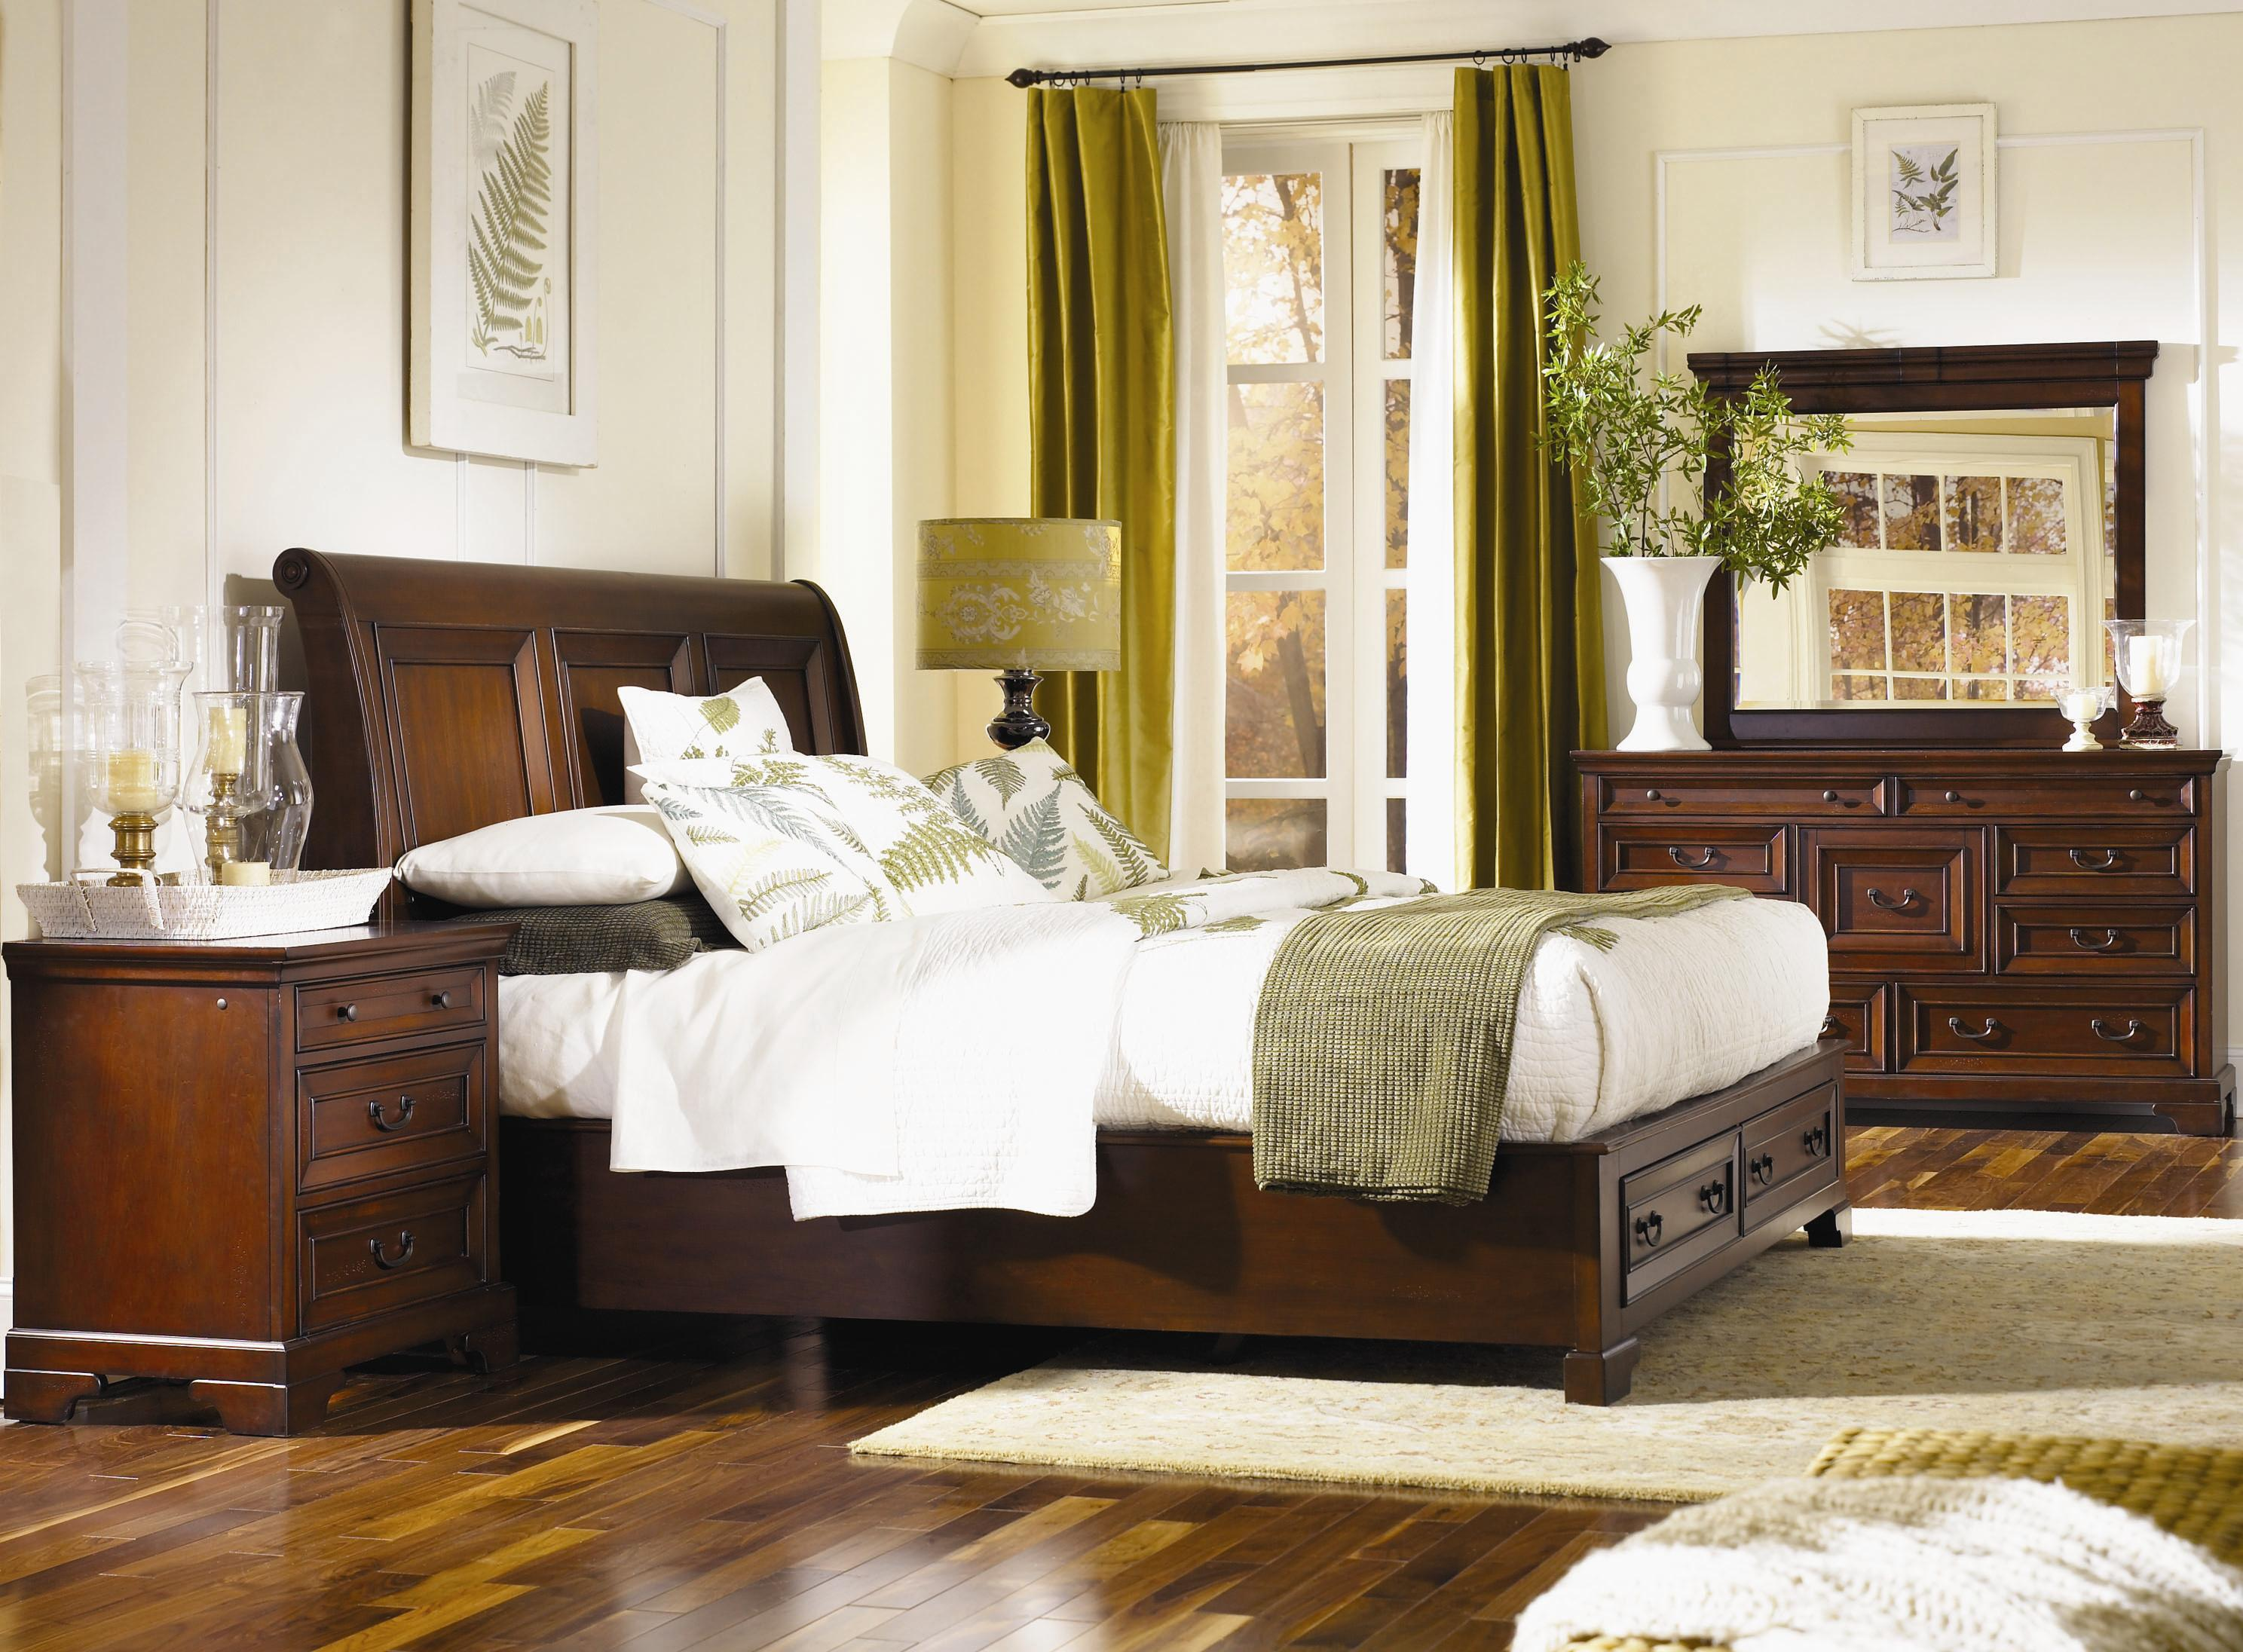 Aspenhome Richmond Queen Bedroom Group - Item Number: I40 Q Bedroom Group 1